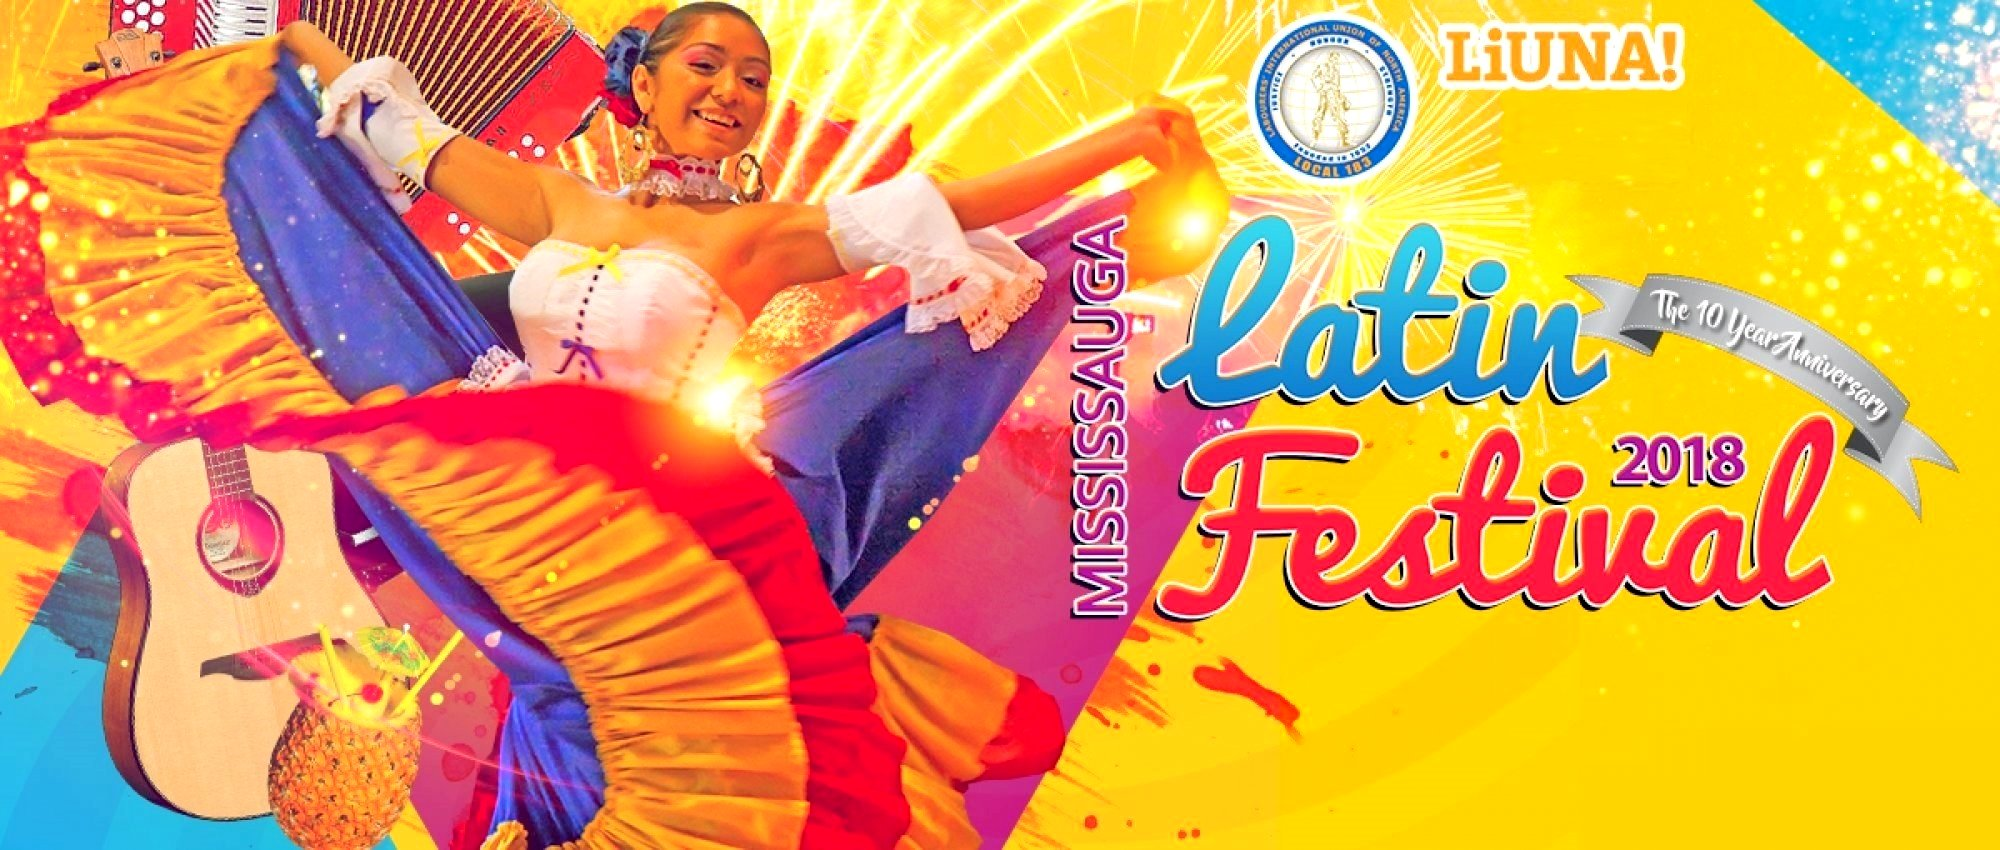 Mississauga Latin Festival Google image from https://culture.mississauga.ca/event/celebration-square/mississauga-latin-festival-1